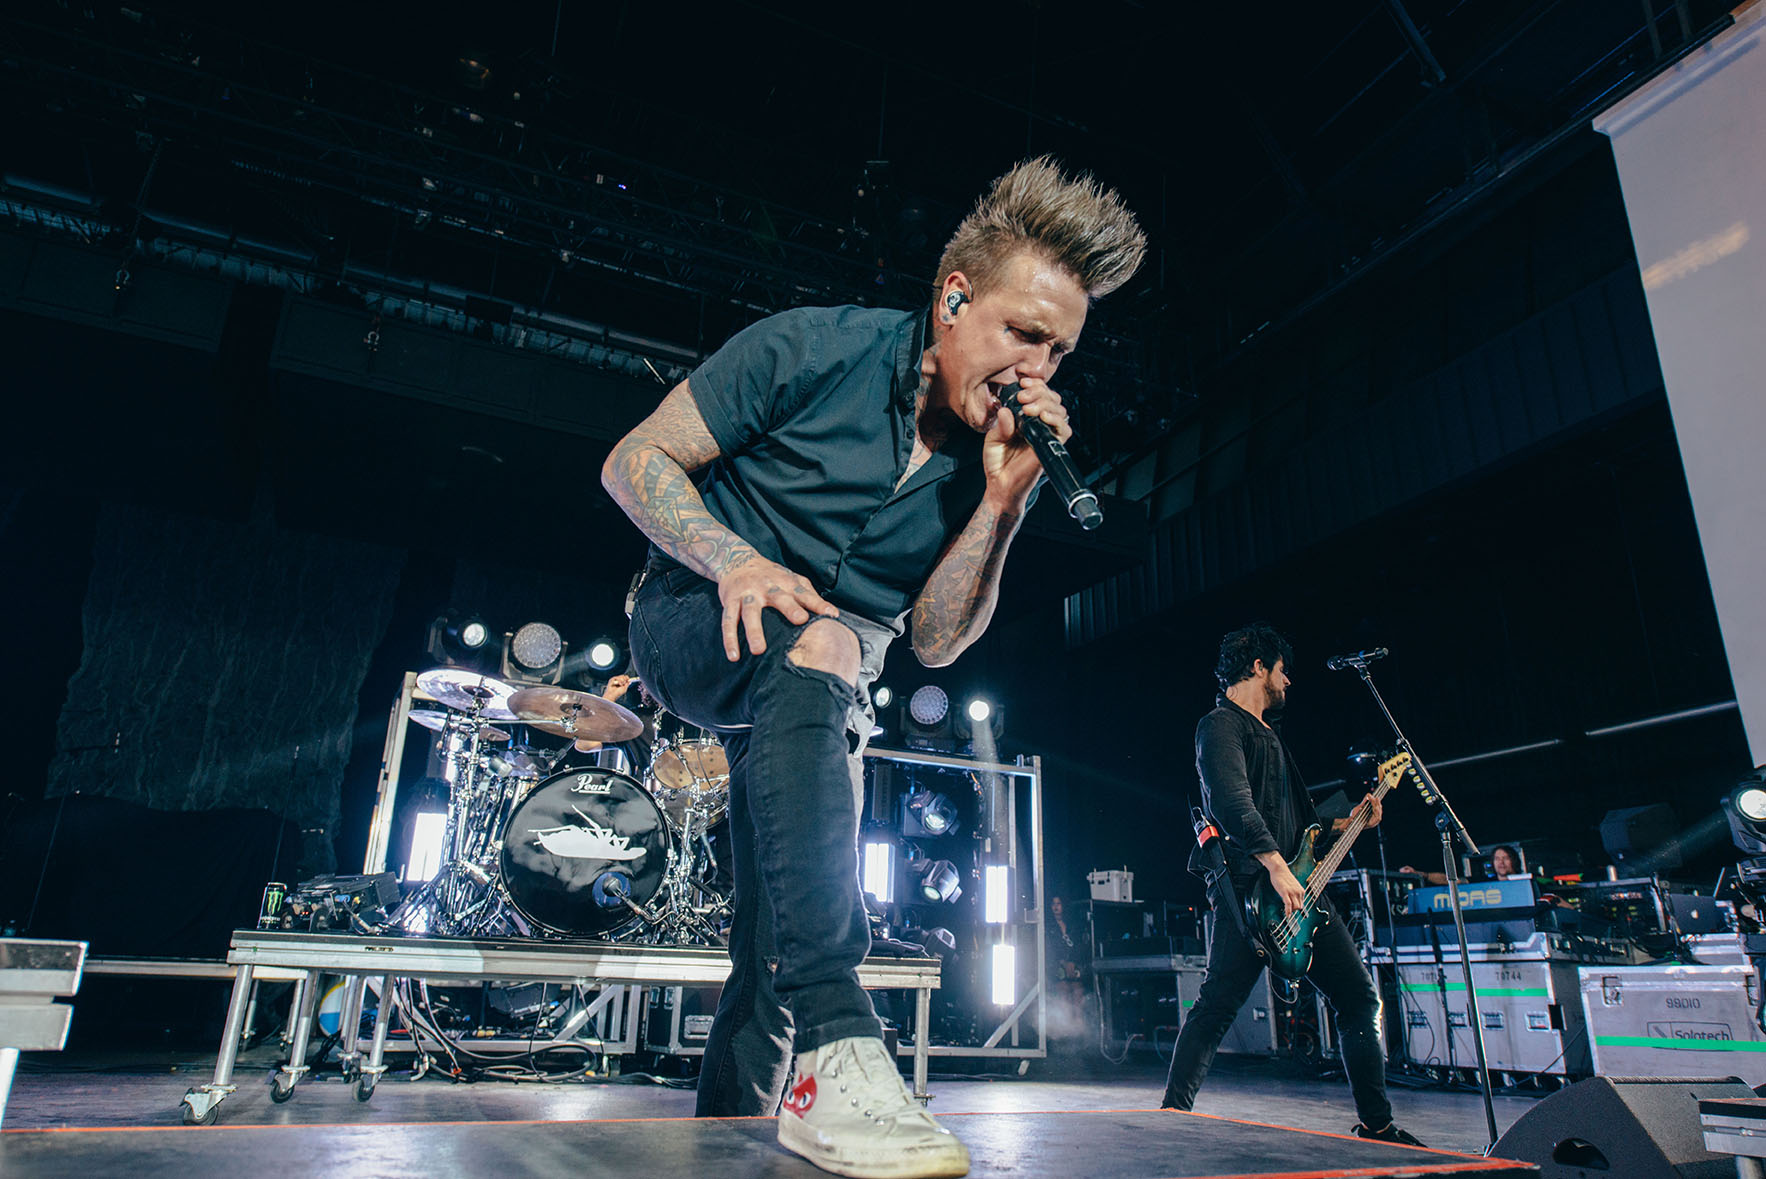 jacoby shaddix papa roach band concert rock photo photography image